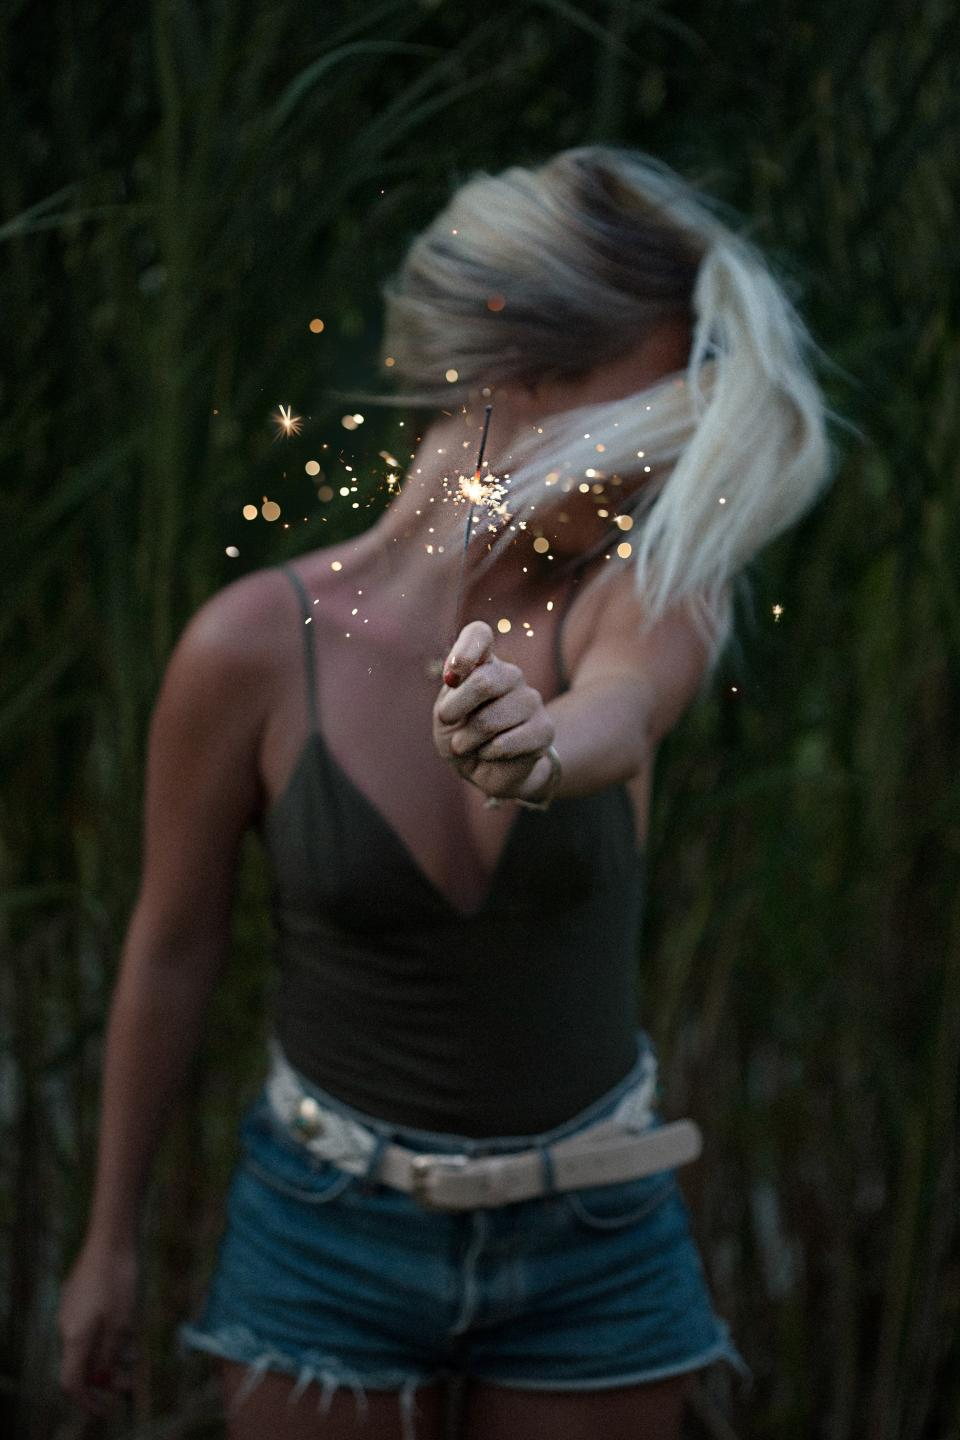 woman, girl, lady, people, stand, fashion, style, hold, out, sparklers, fireworks, sparkle, crackle, sparks, light, orbs, celebrate, field, leaves, still, bokeh